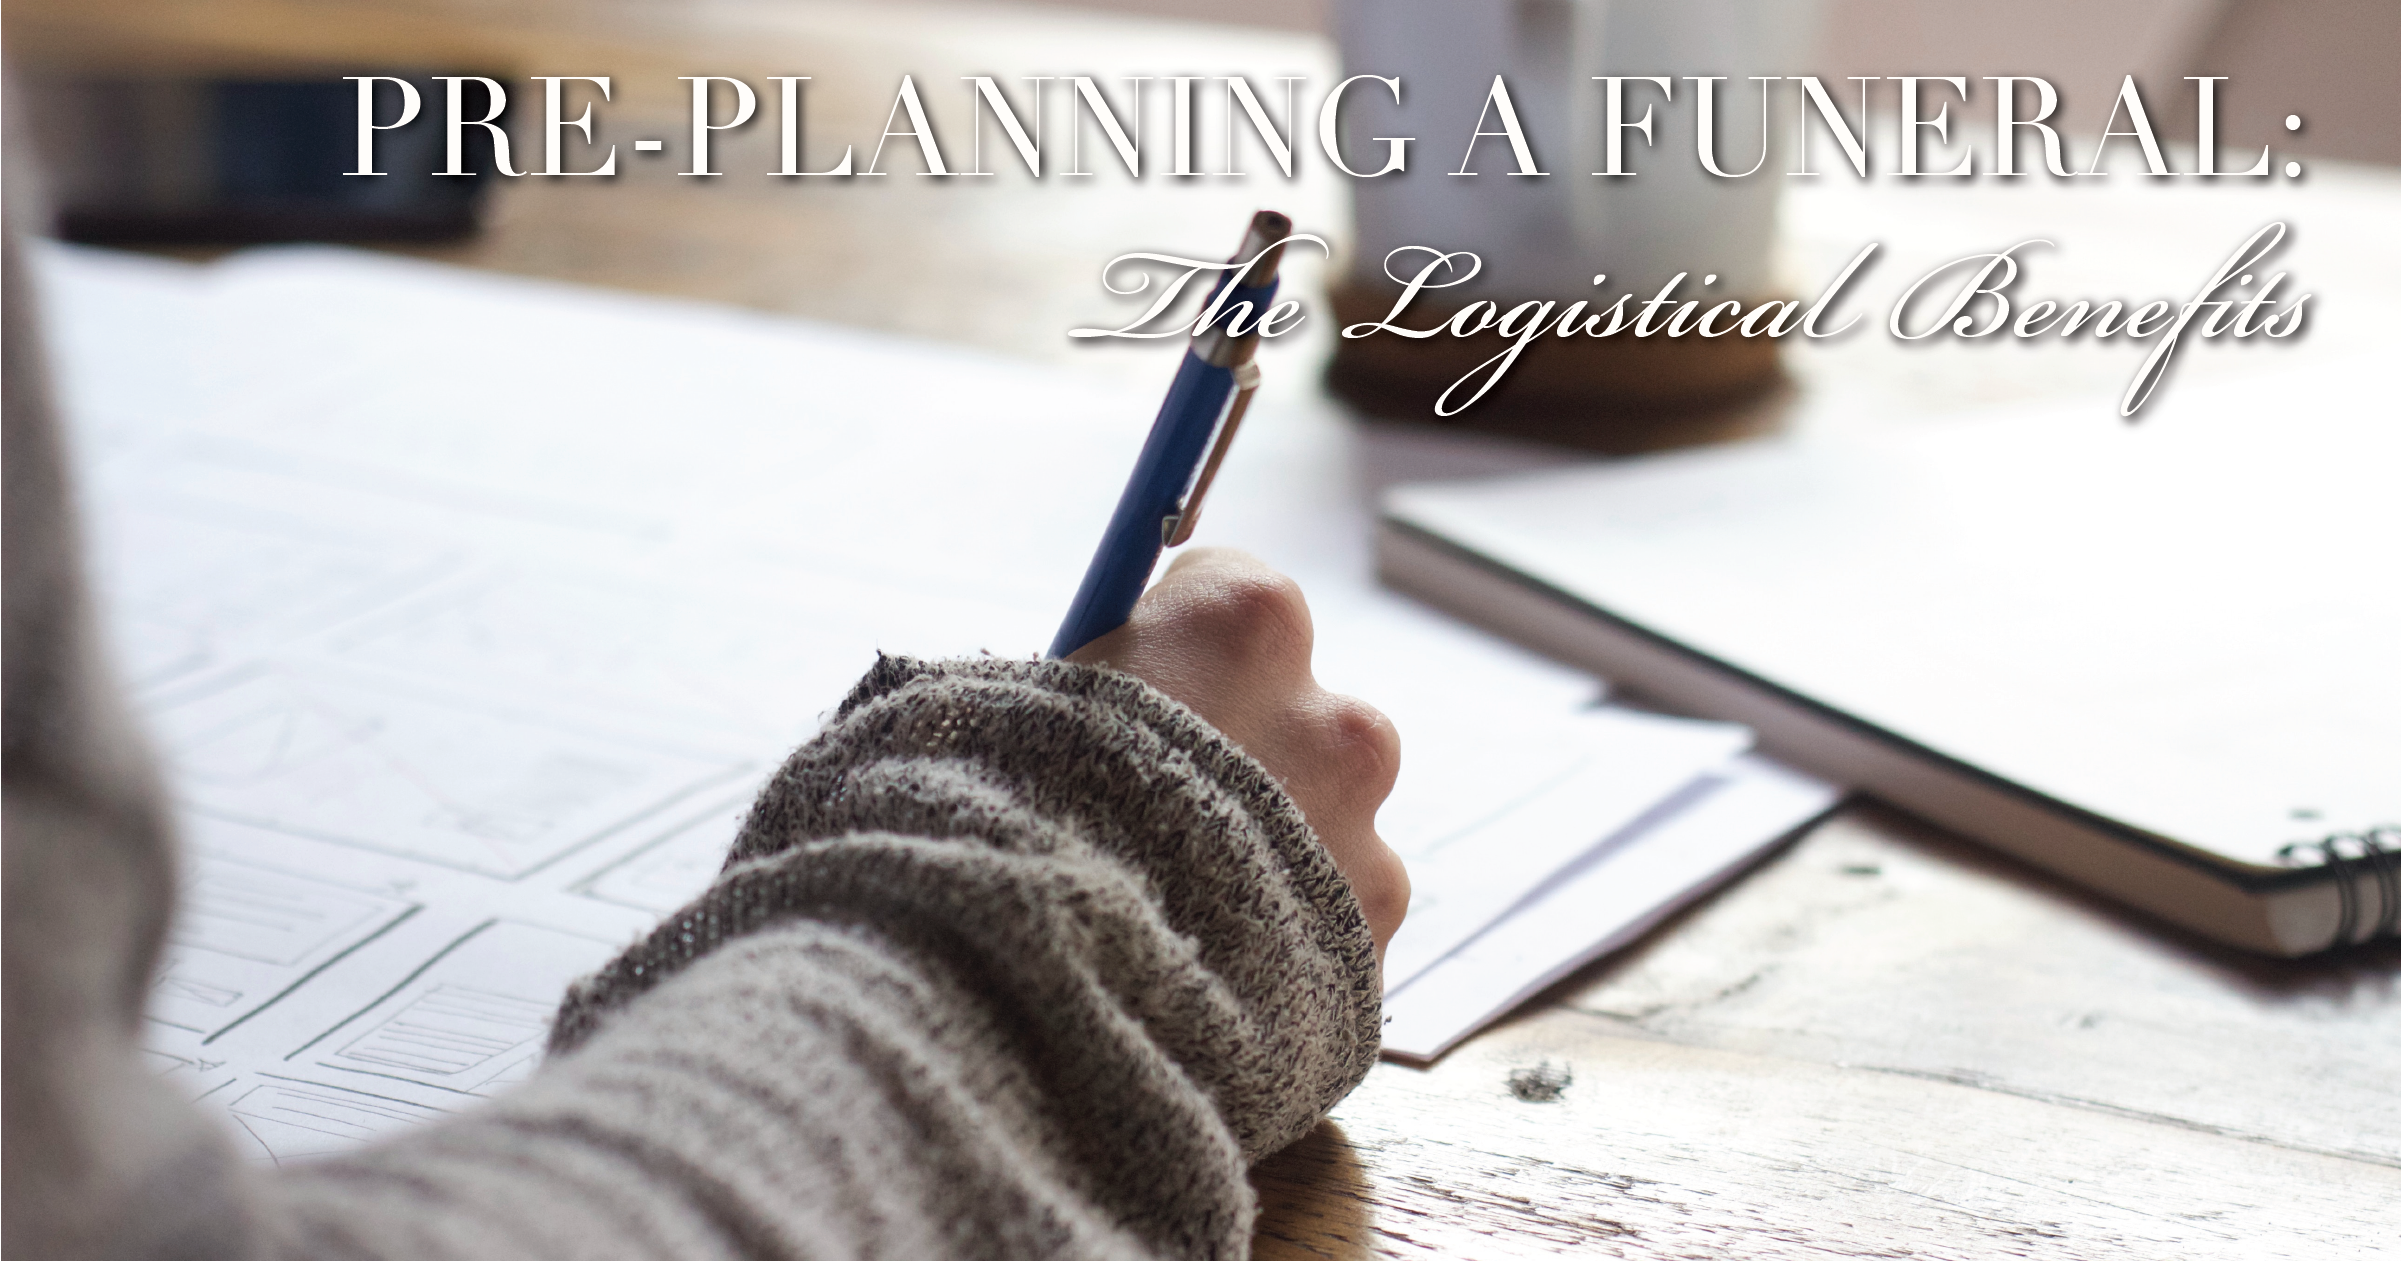 Pre-Planning a Funeral: The Logistical Benefits